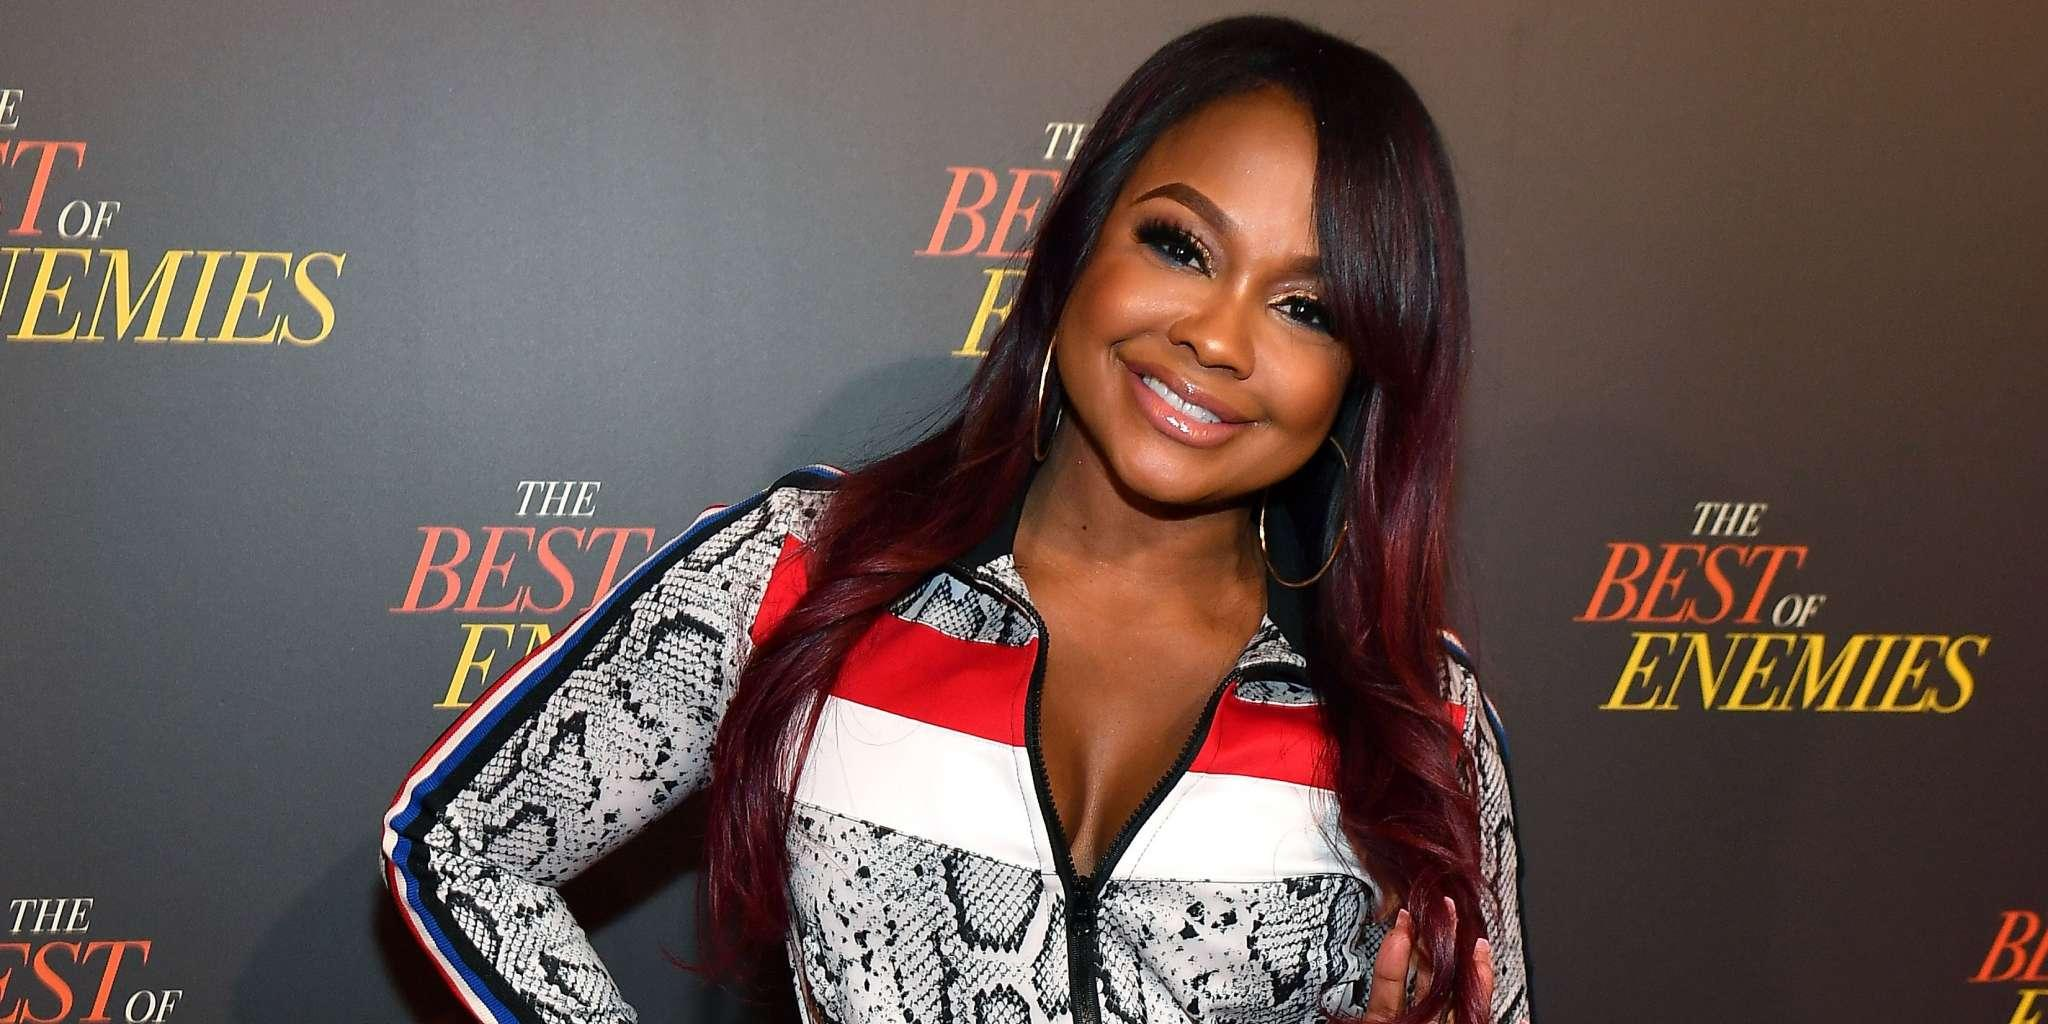 Phaedra Parks Looks Like A Teenager In Her Latest Photo